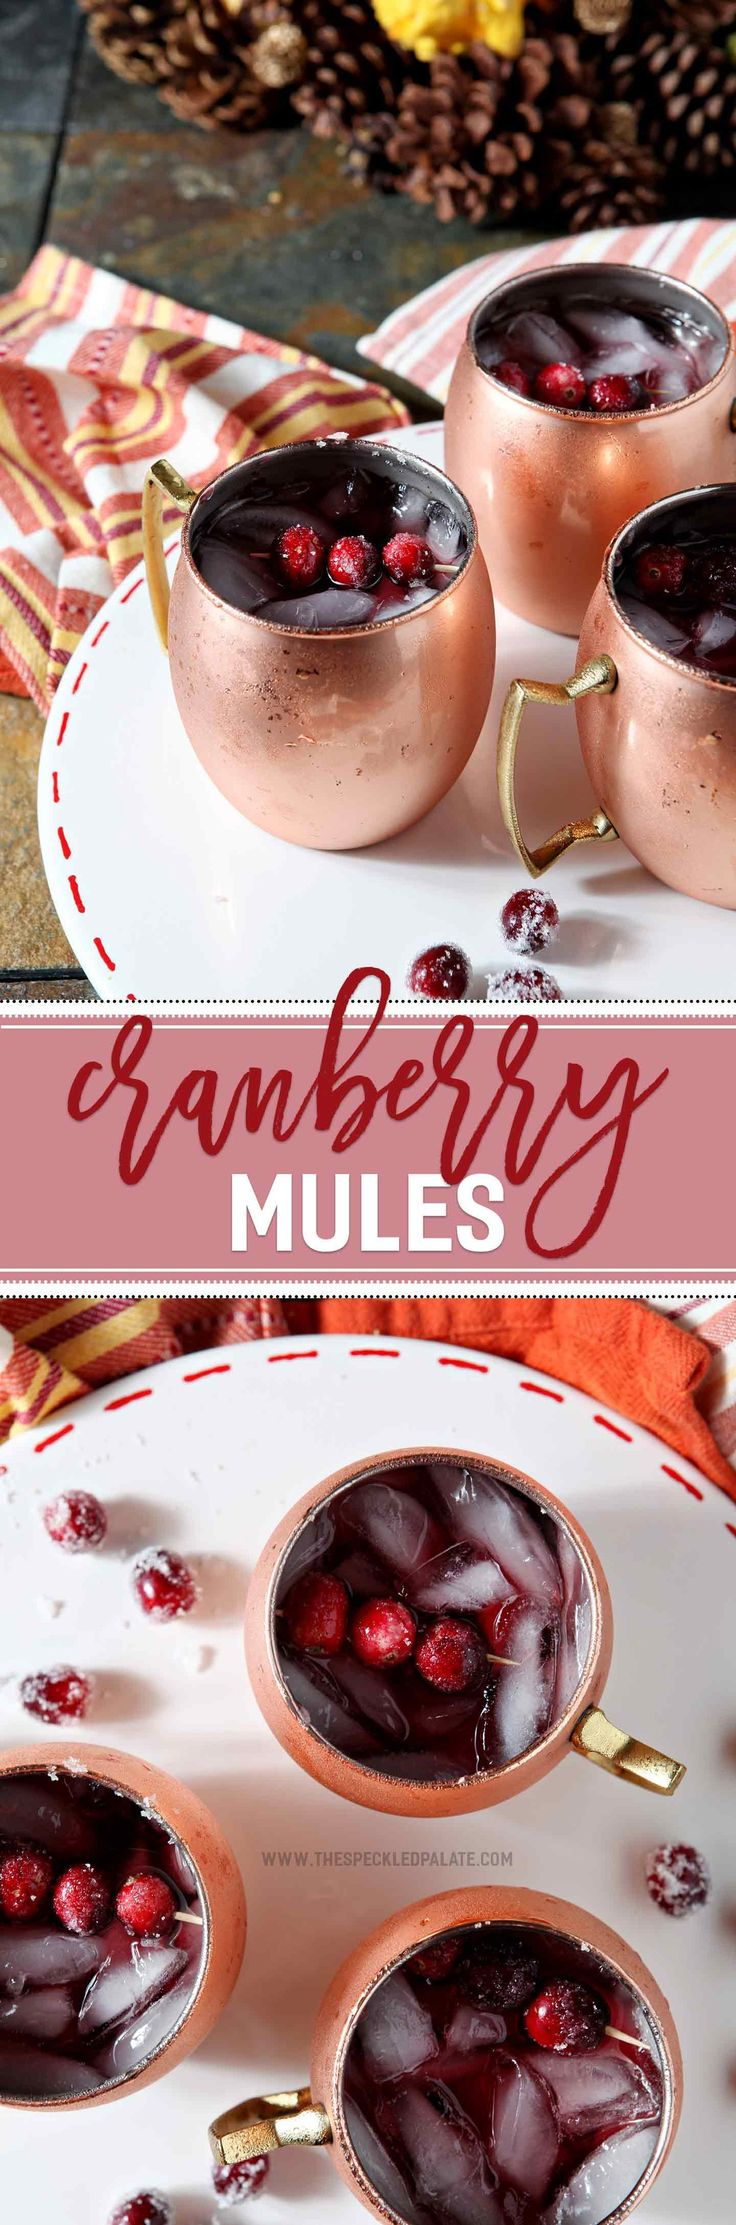 The Cranberry Mule is a fun take on the more traditional Moscow Mule. Perfect as a Thanksgiving cocktail, this drink calls for cranberry, ginger beer and spiced rum, then is topped with sugared cranberries as garnish.